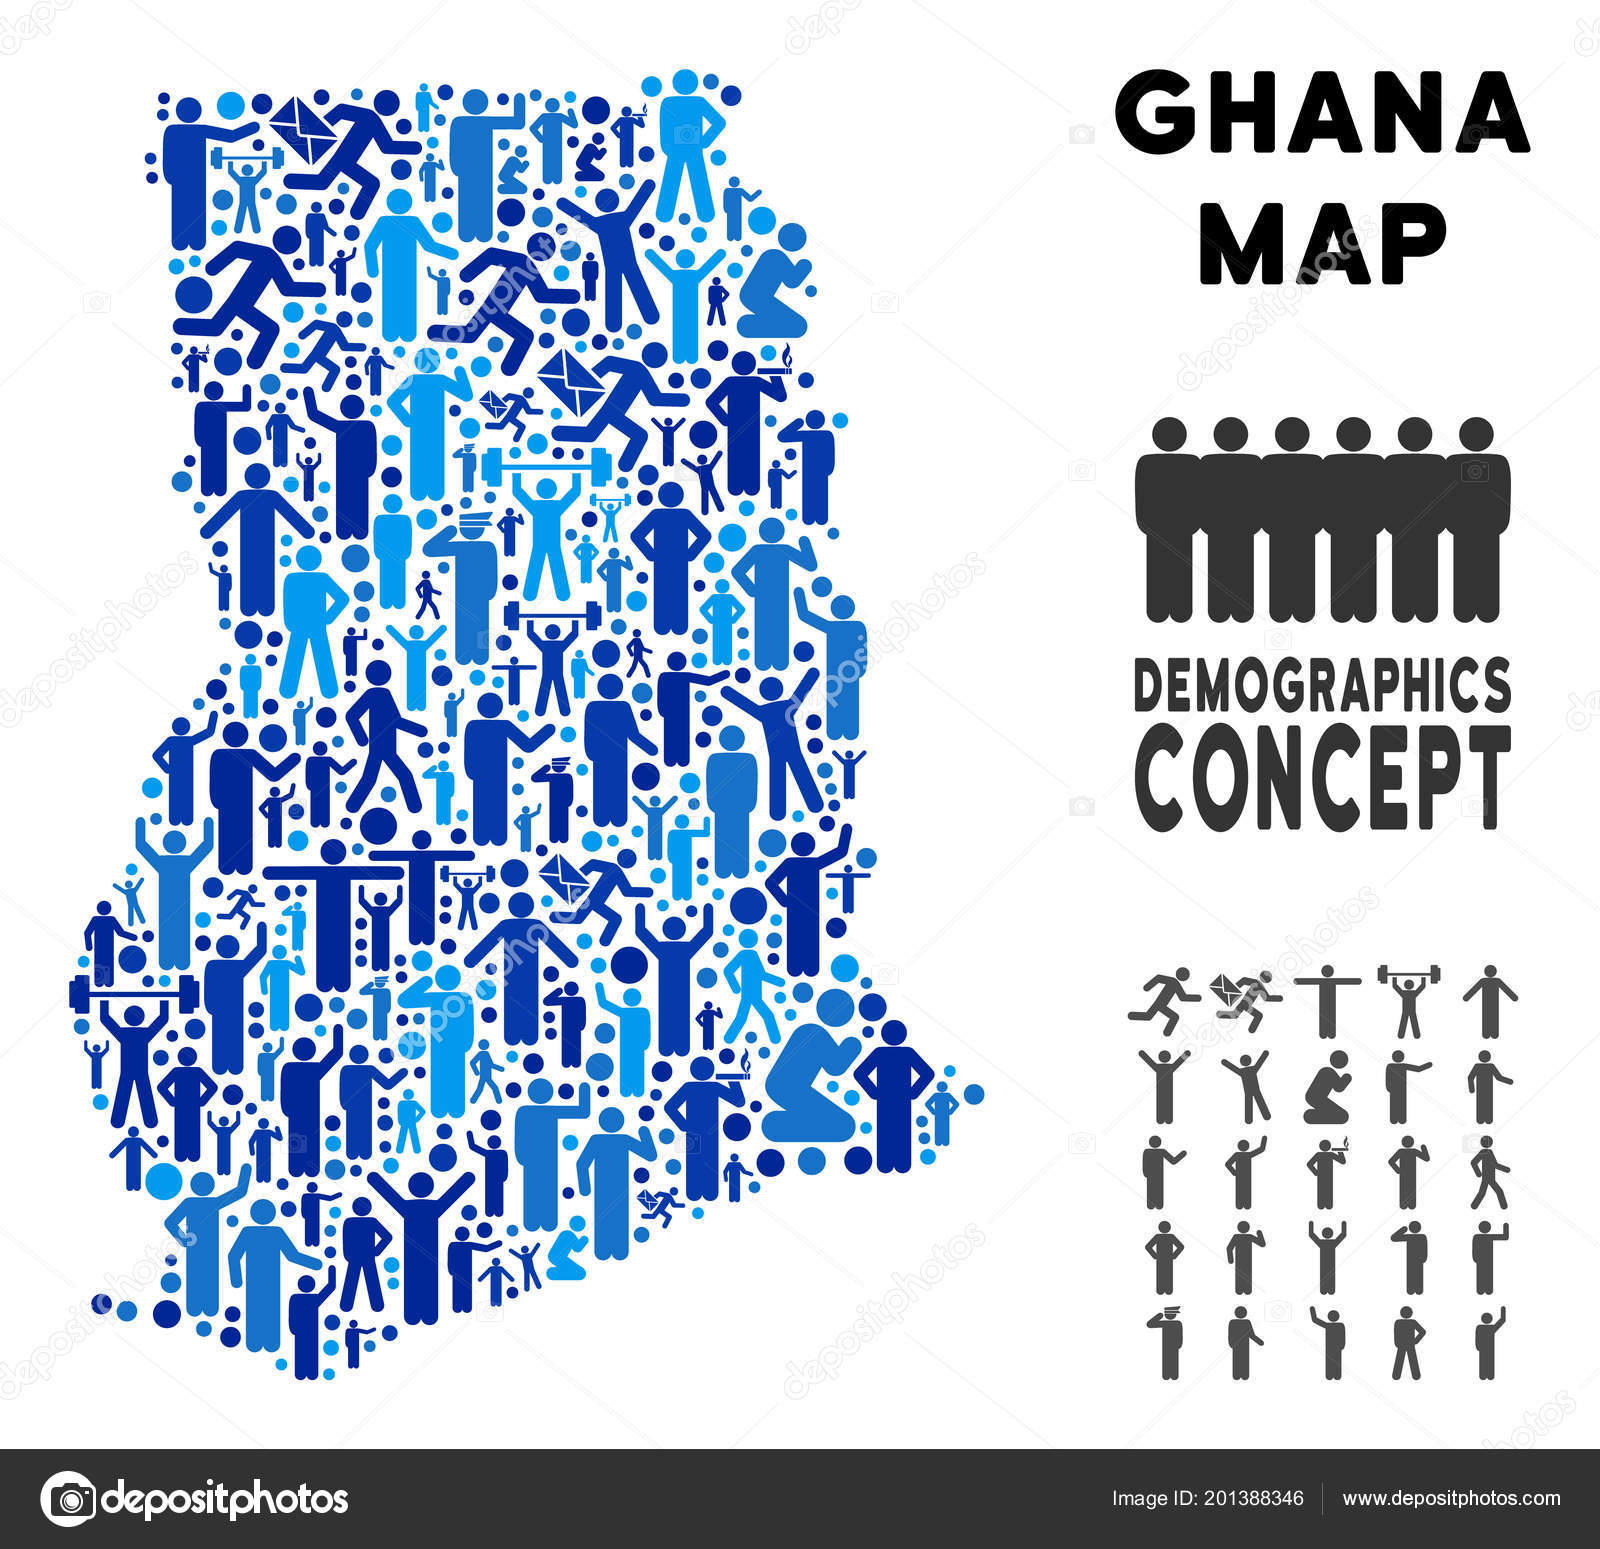 Demographics Ghana Map — Stock Vector © ahasoft #201388346 on world map, structural map, nutrient map, florida state capital map, climate map, geologic map, topological map, urban rail and metro maps, person with map, dasymetric map, aeronautical chart, educational map, flow map, choropleth map, personality map, population north carolina county map, nautical chart, crime map, racial map, reversed map, economic map, pictorial maps, us house of representatives map, city map, topographic map, population density map, t and o map, competitive map, social map, historic map, anthropological map, dns map,